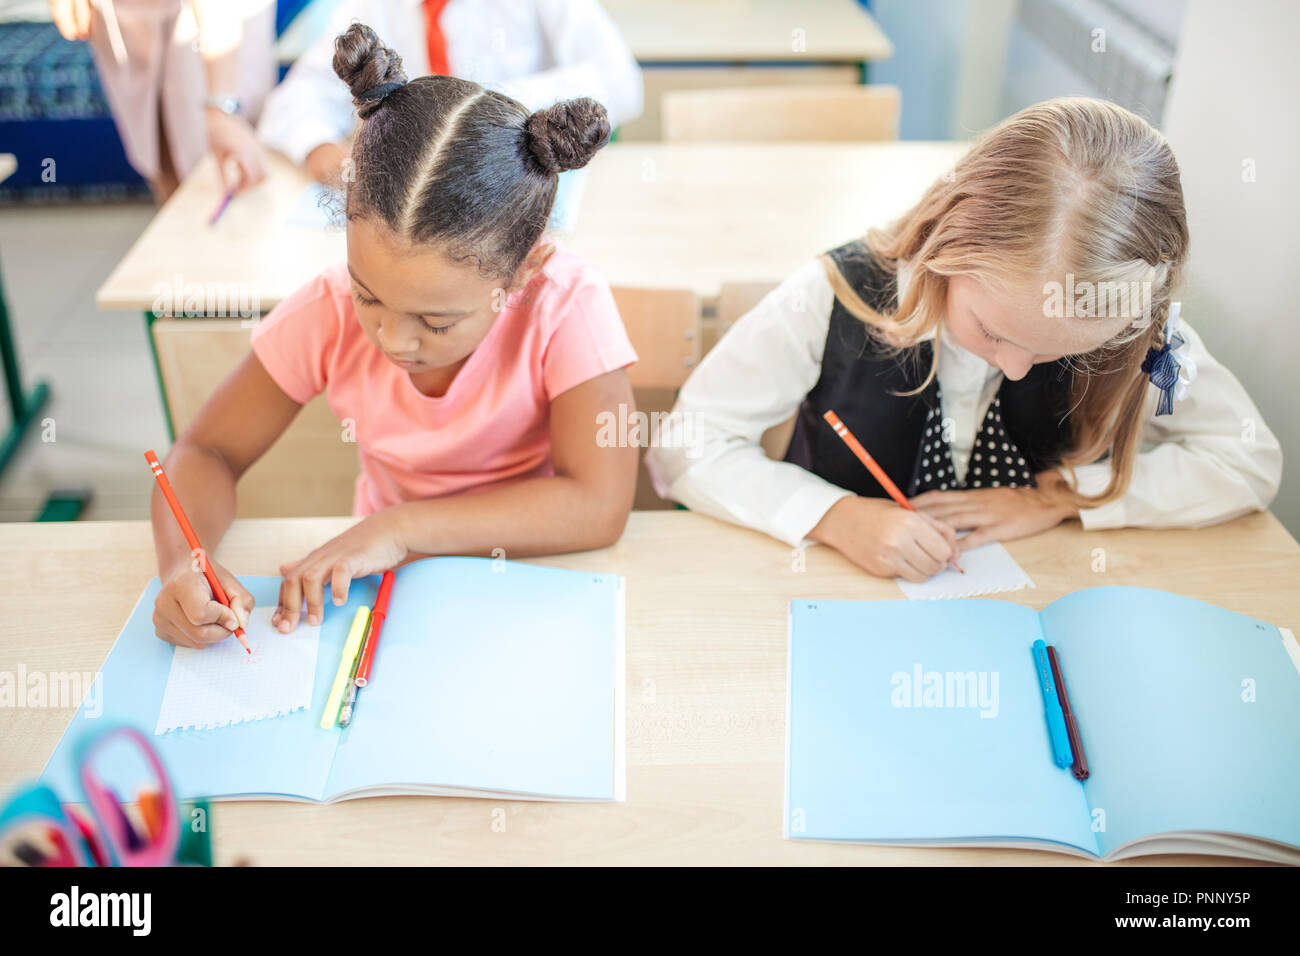 school children are participating actively in class. Education, homework concept - Stock Image